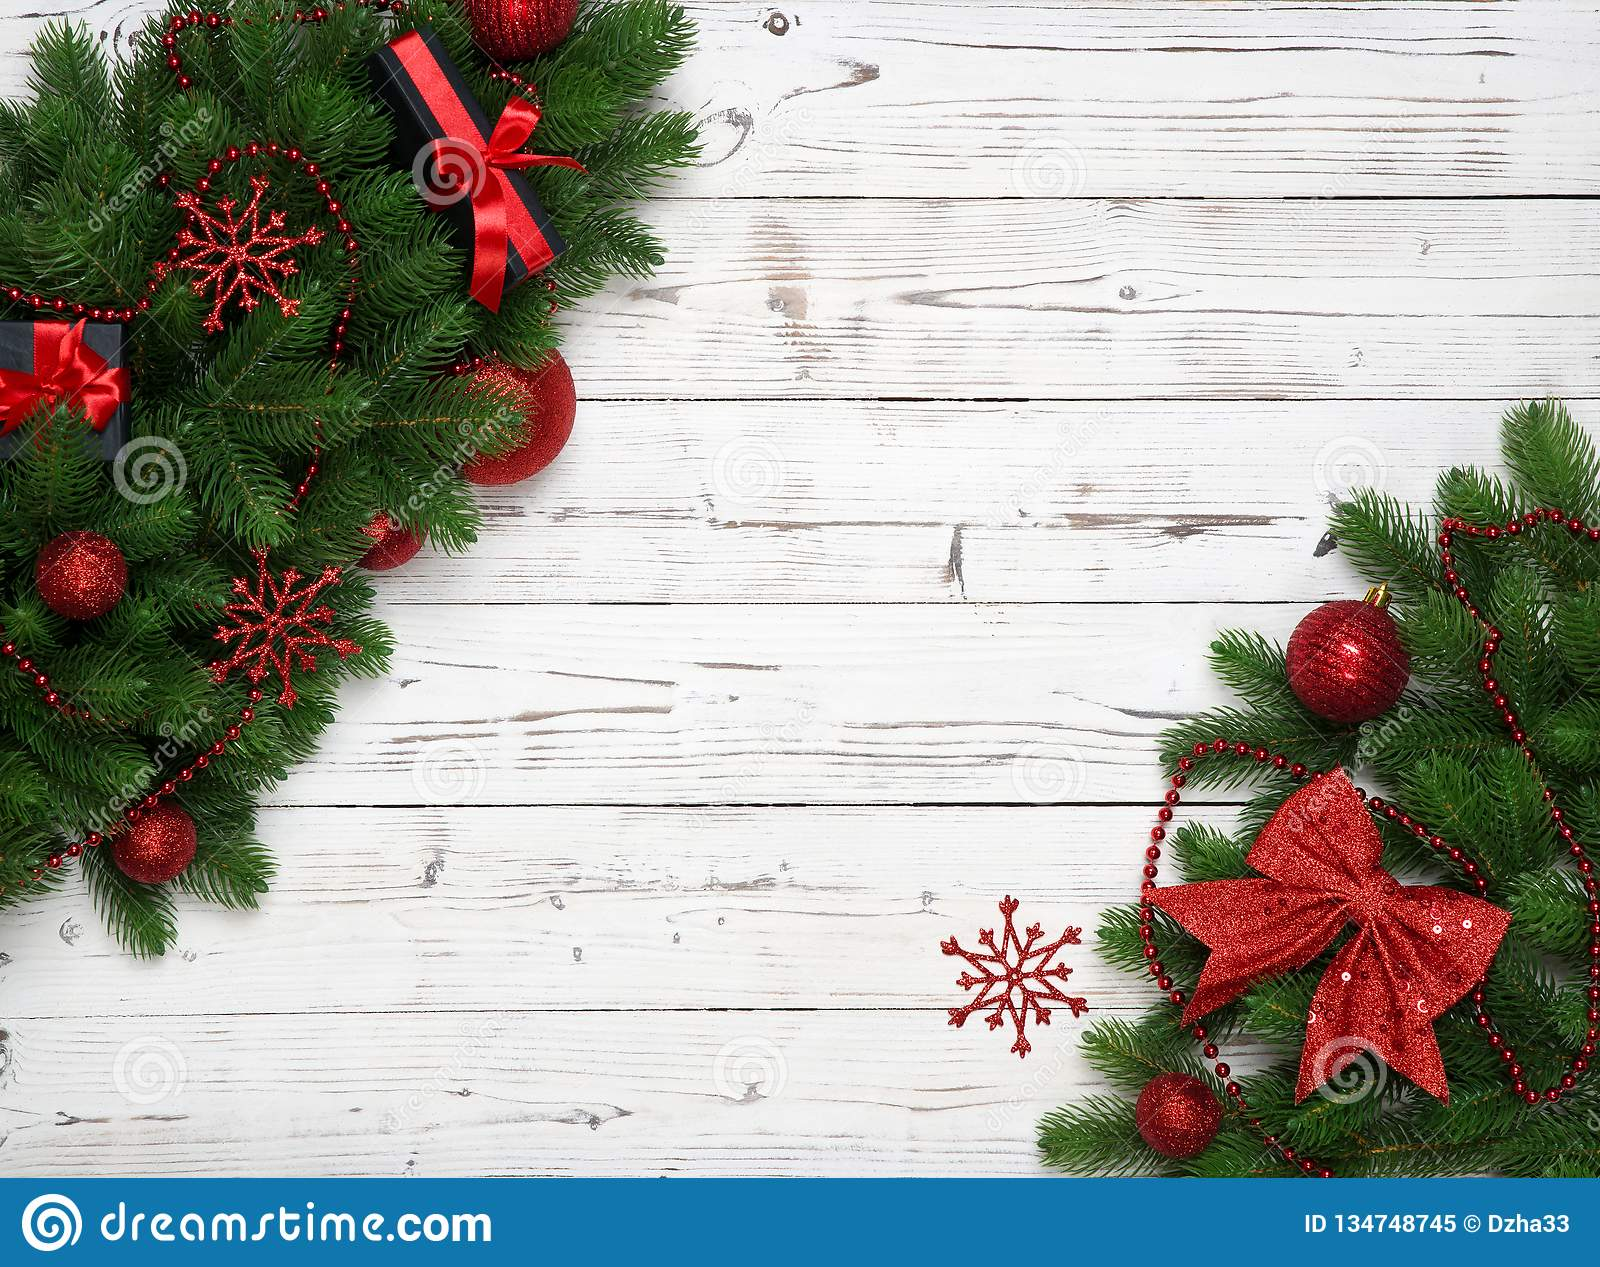 Christmas Decoration With New Year Decor, Ball, Baubles ...